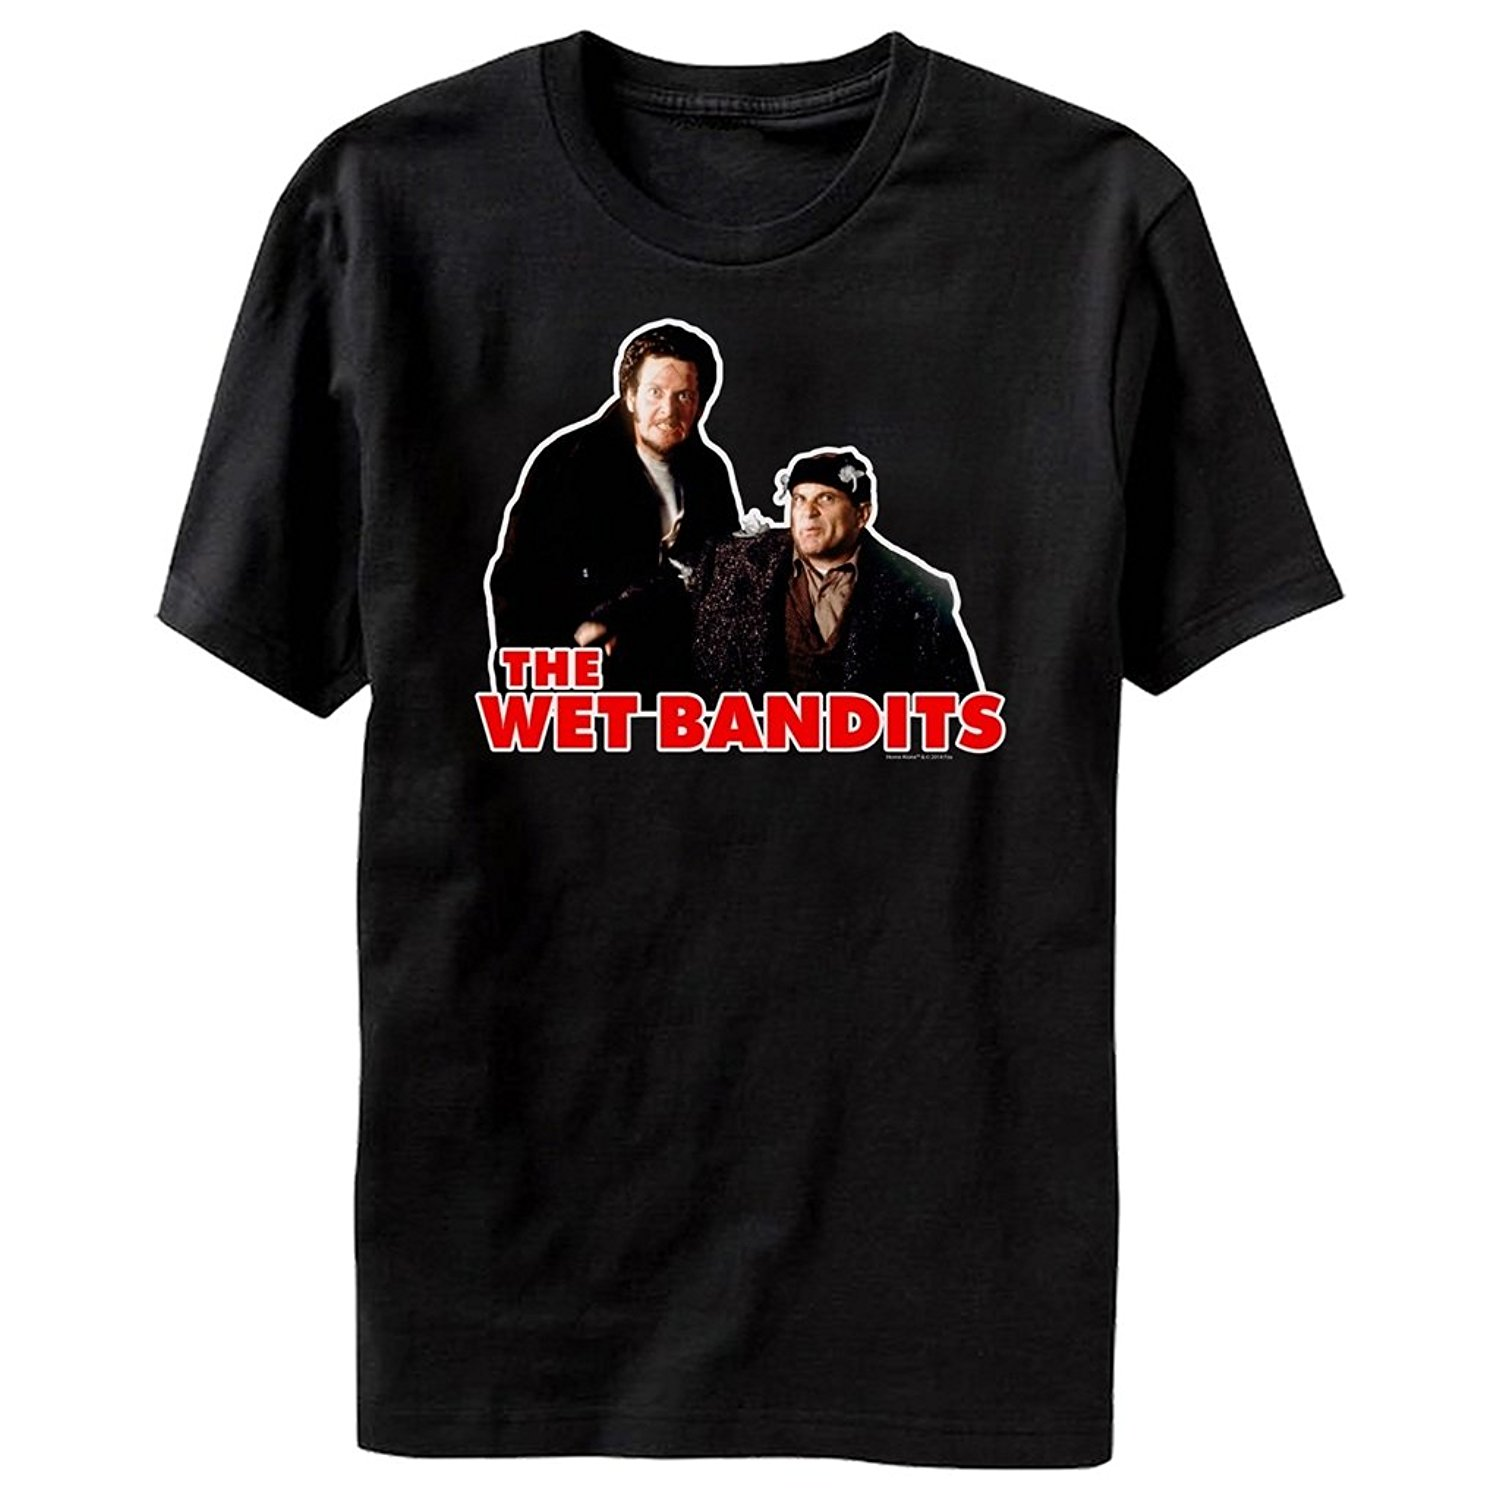 Black t shirt at walmart - About This Item